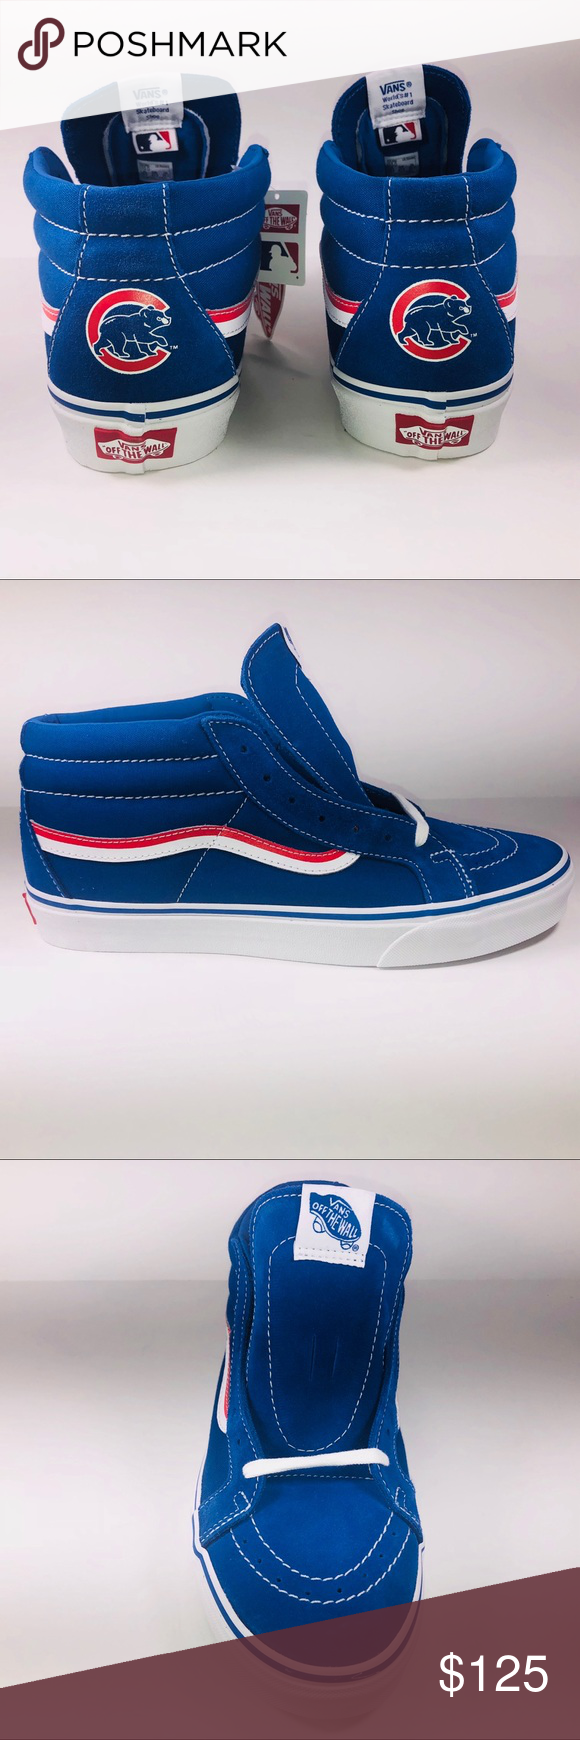 deffbb2e0f VANS SK8 Mid MLB Cubs Classic Blue Skateboard Shoe New With Box See  Pictures For Details